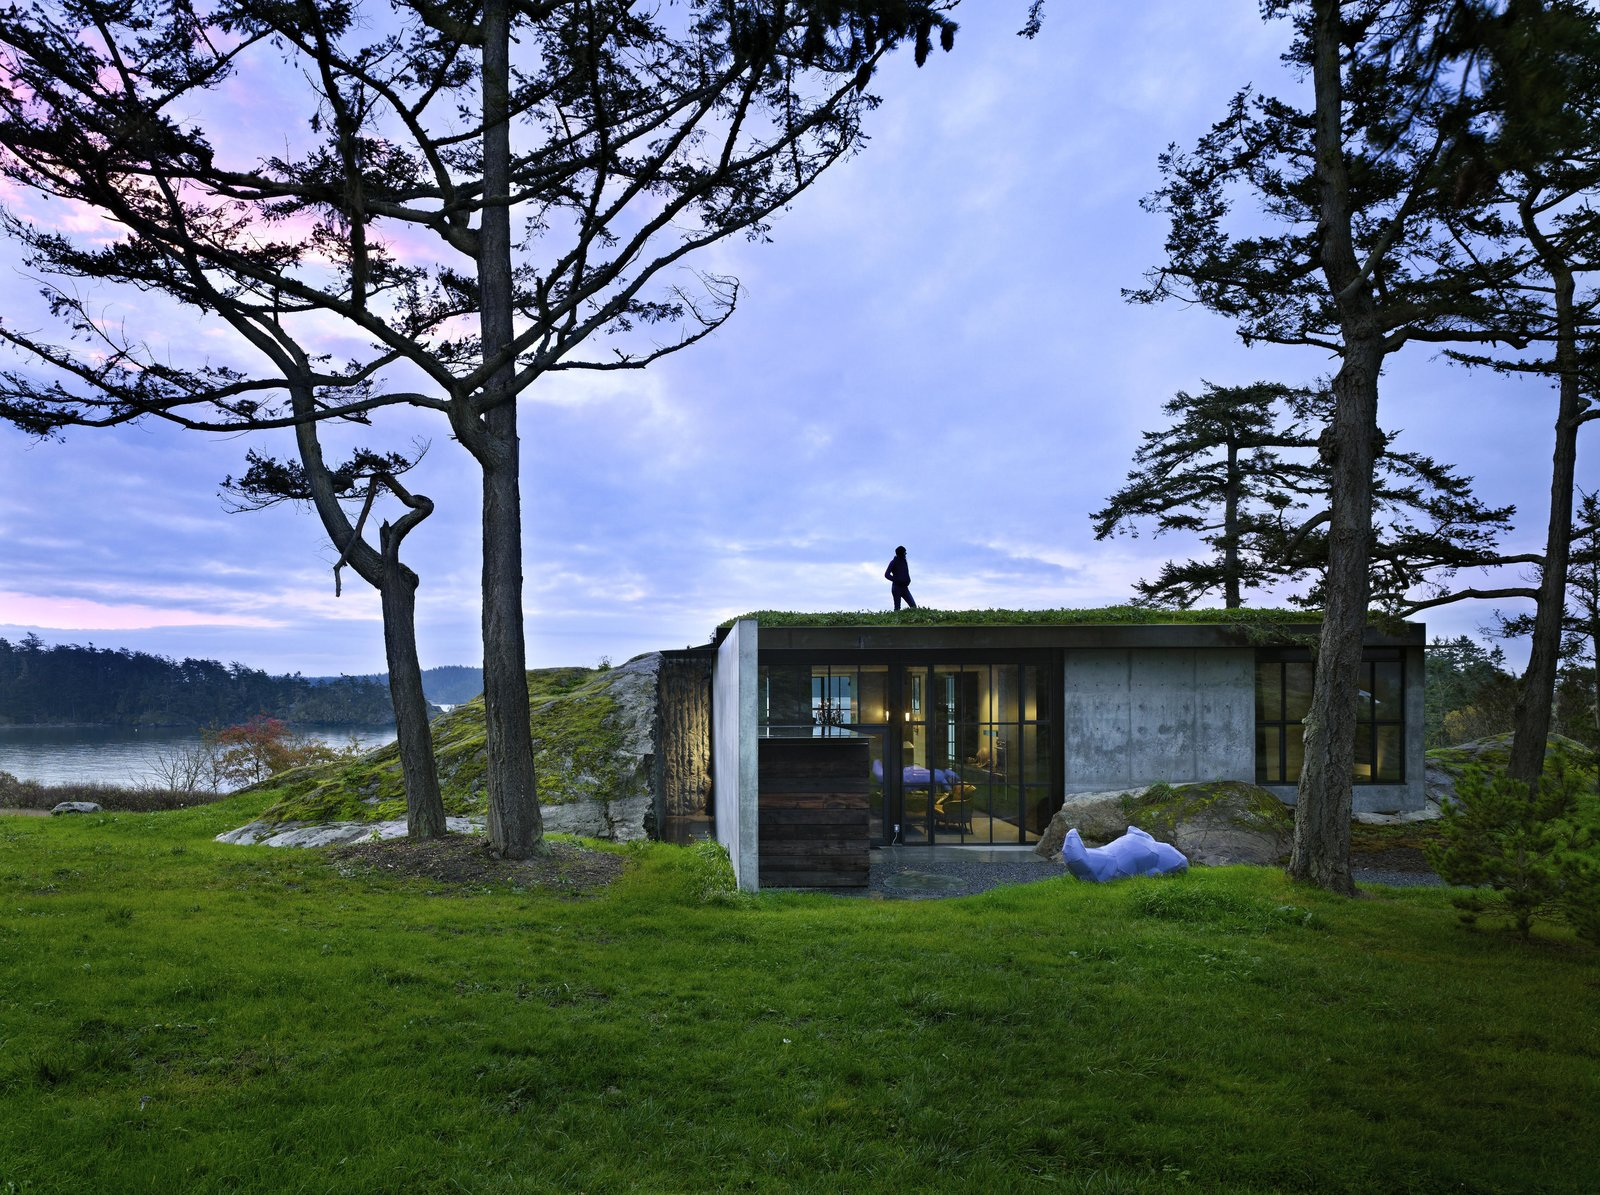 The Pierre | Olson Kundig Tagged: Exterior, House, Flat RoofLine, Green Roof Material, Glass Siding Material, and Concrete Siding Material.  The Pierre by Olson Kundig